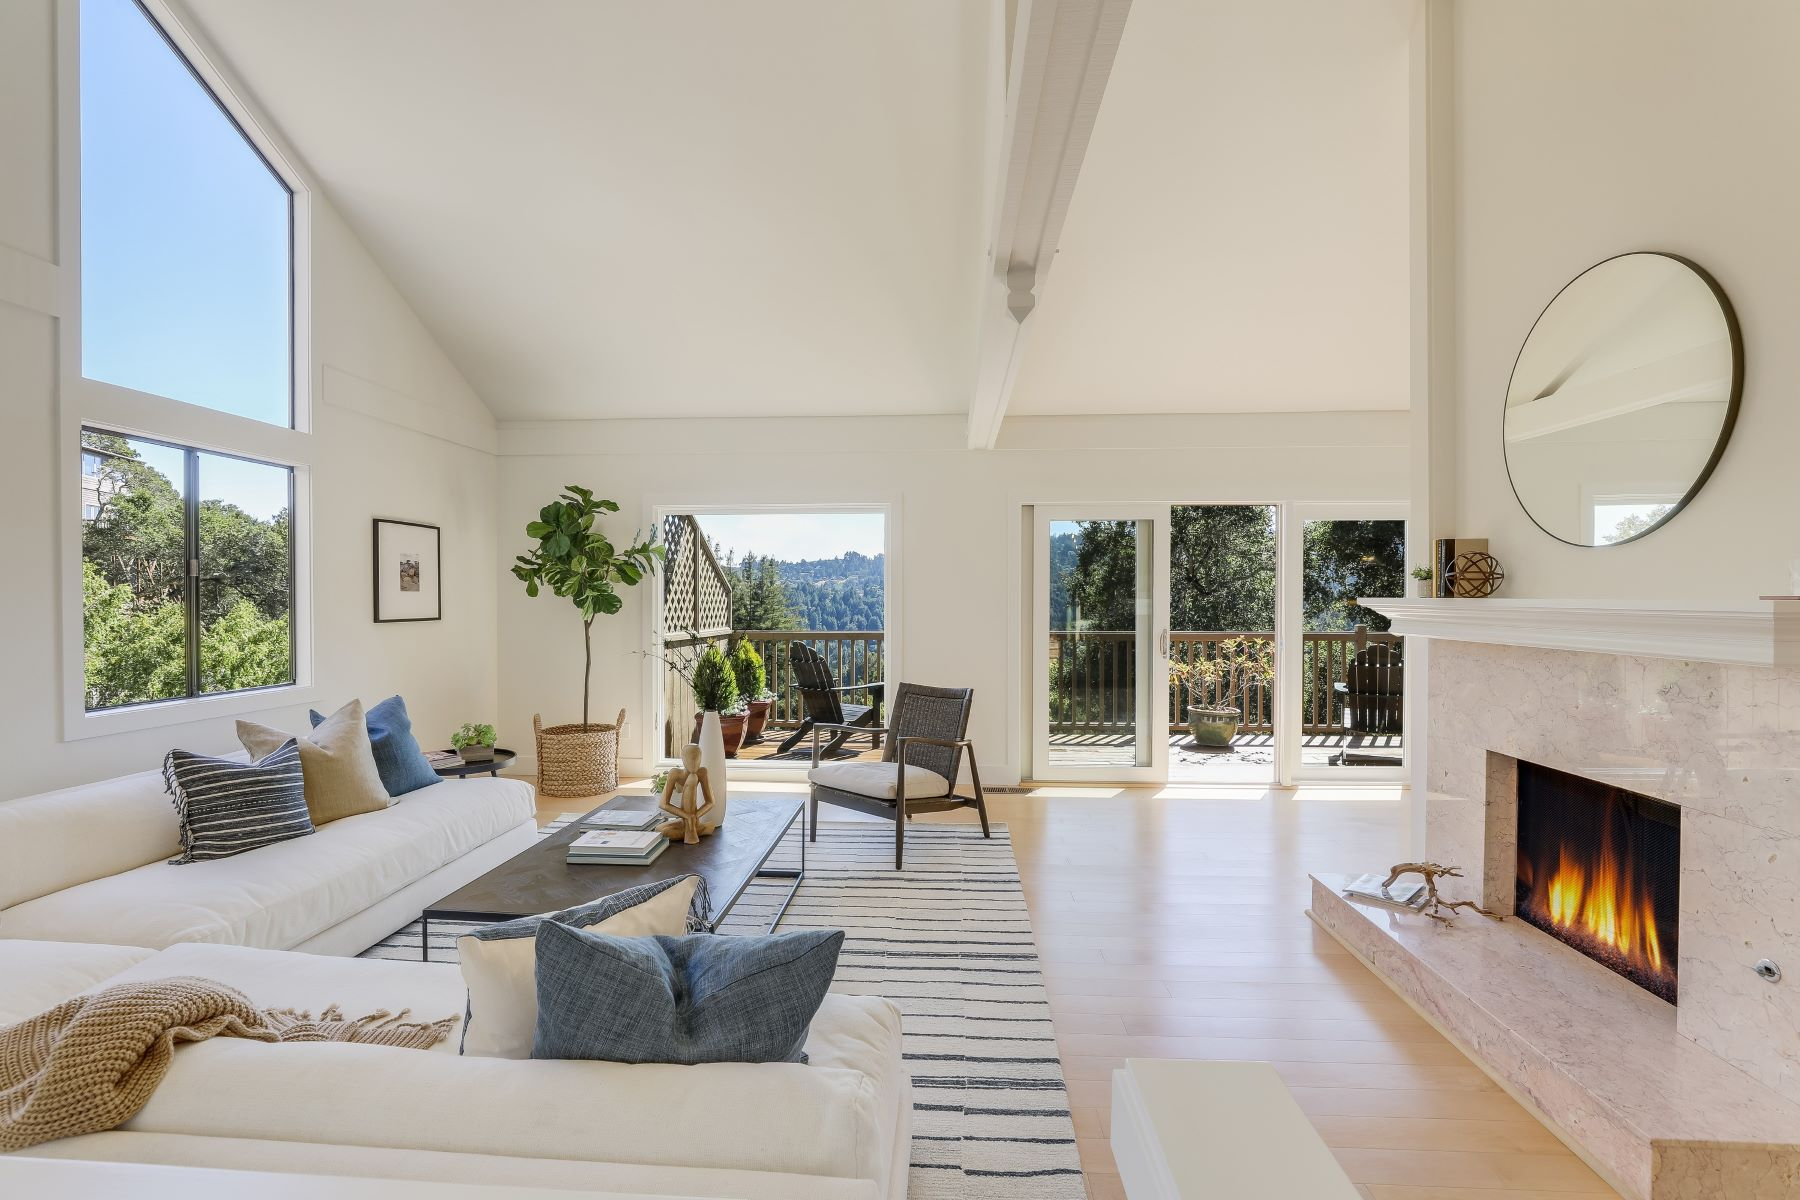 Single Family Homes pour l Vente à Stunning Mill Valley Contemporary 54 Greenwood Way, Mill Valley, Californie 94941 États-Unis